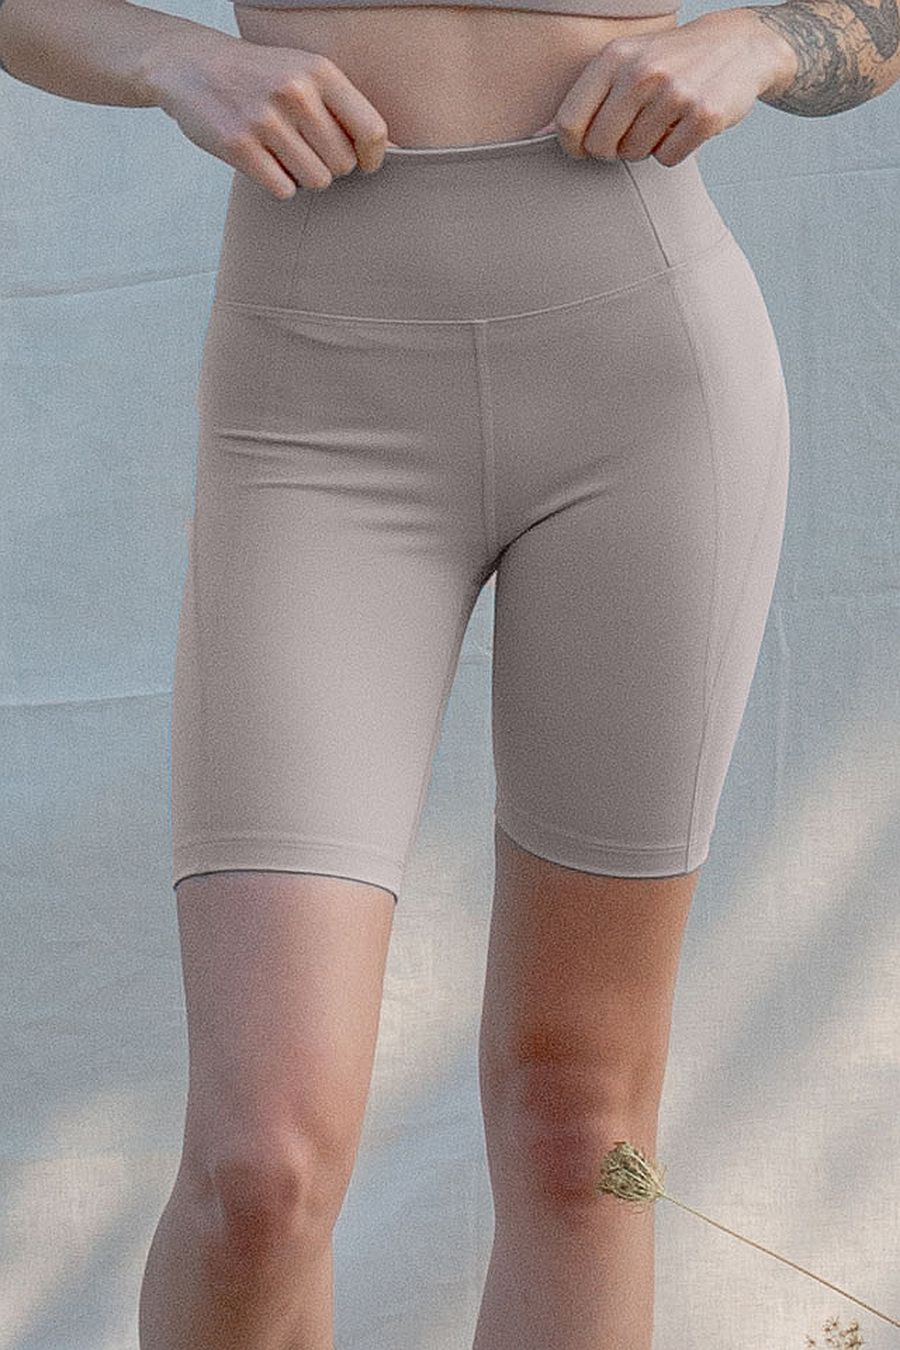 Girlfriend Collective Limestone High Rise Bike Short